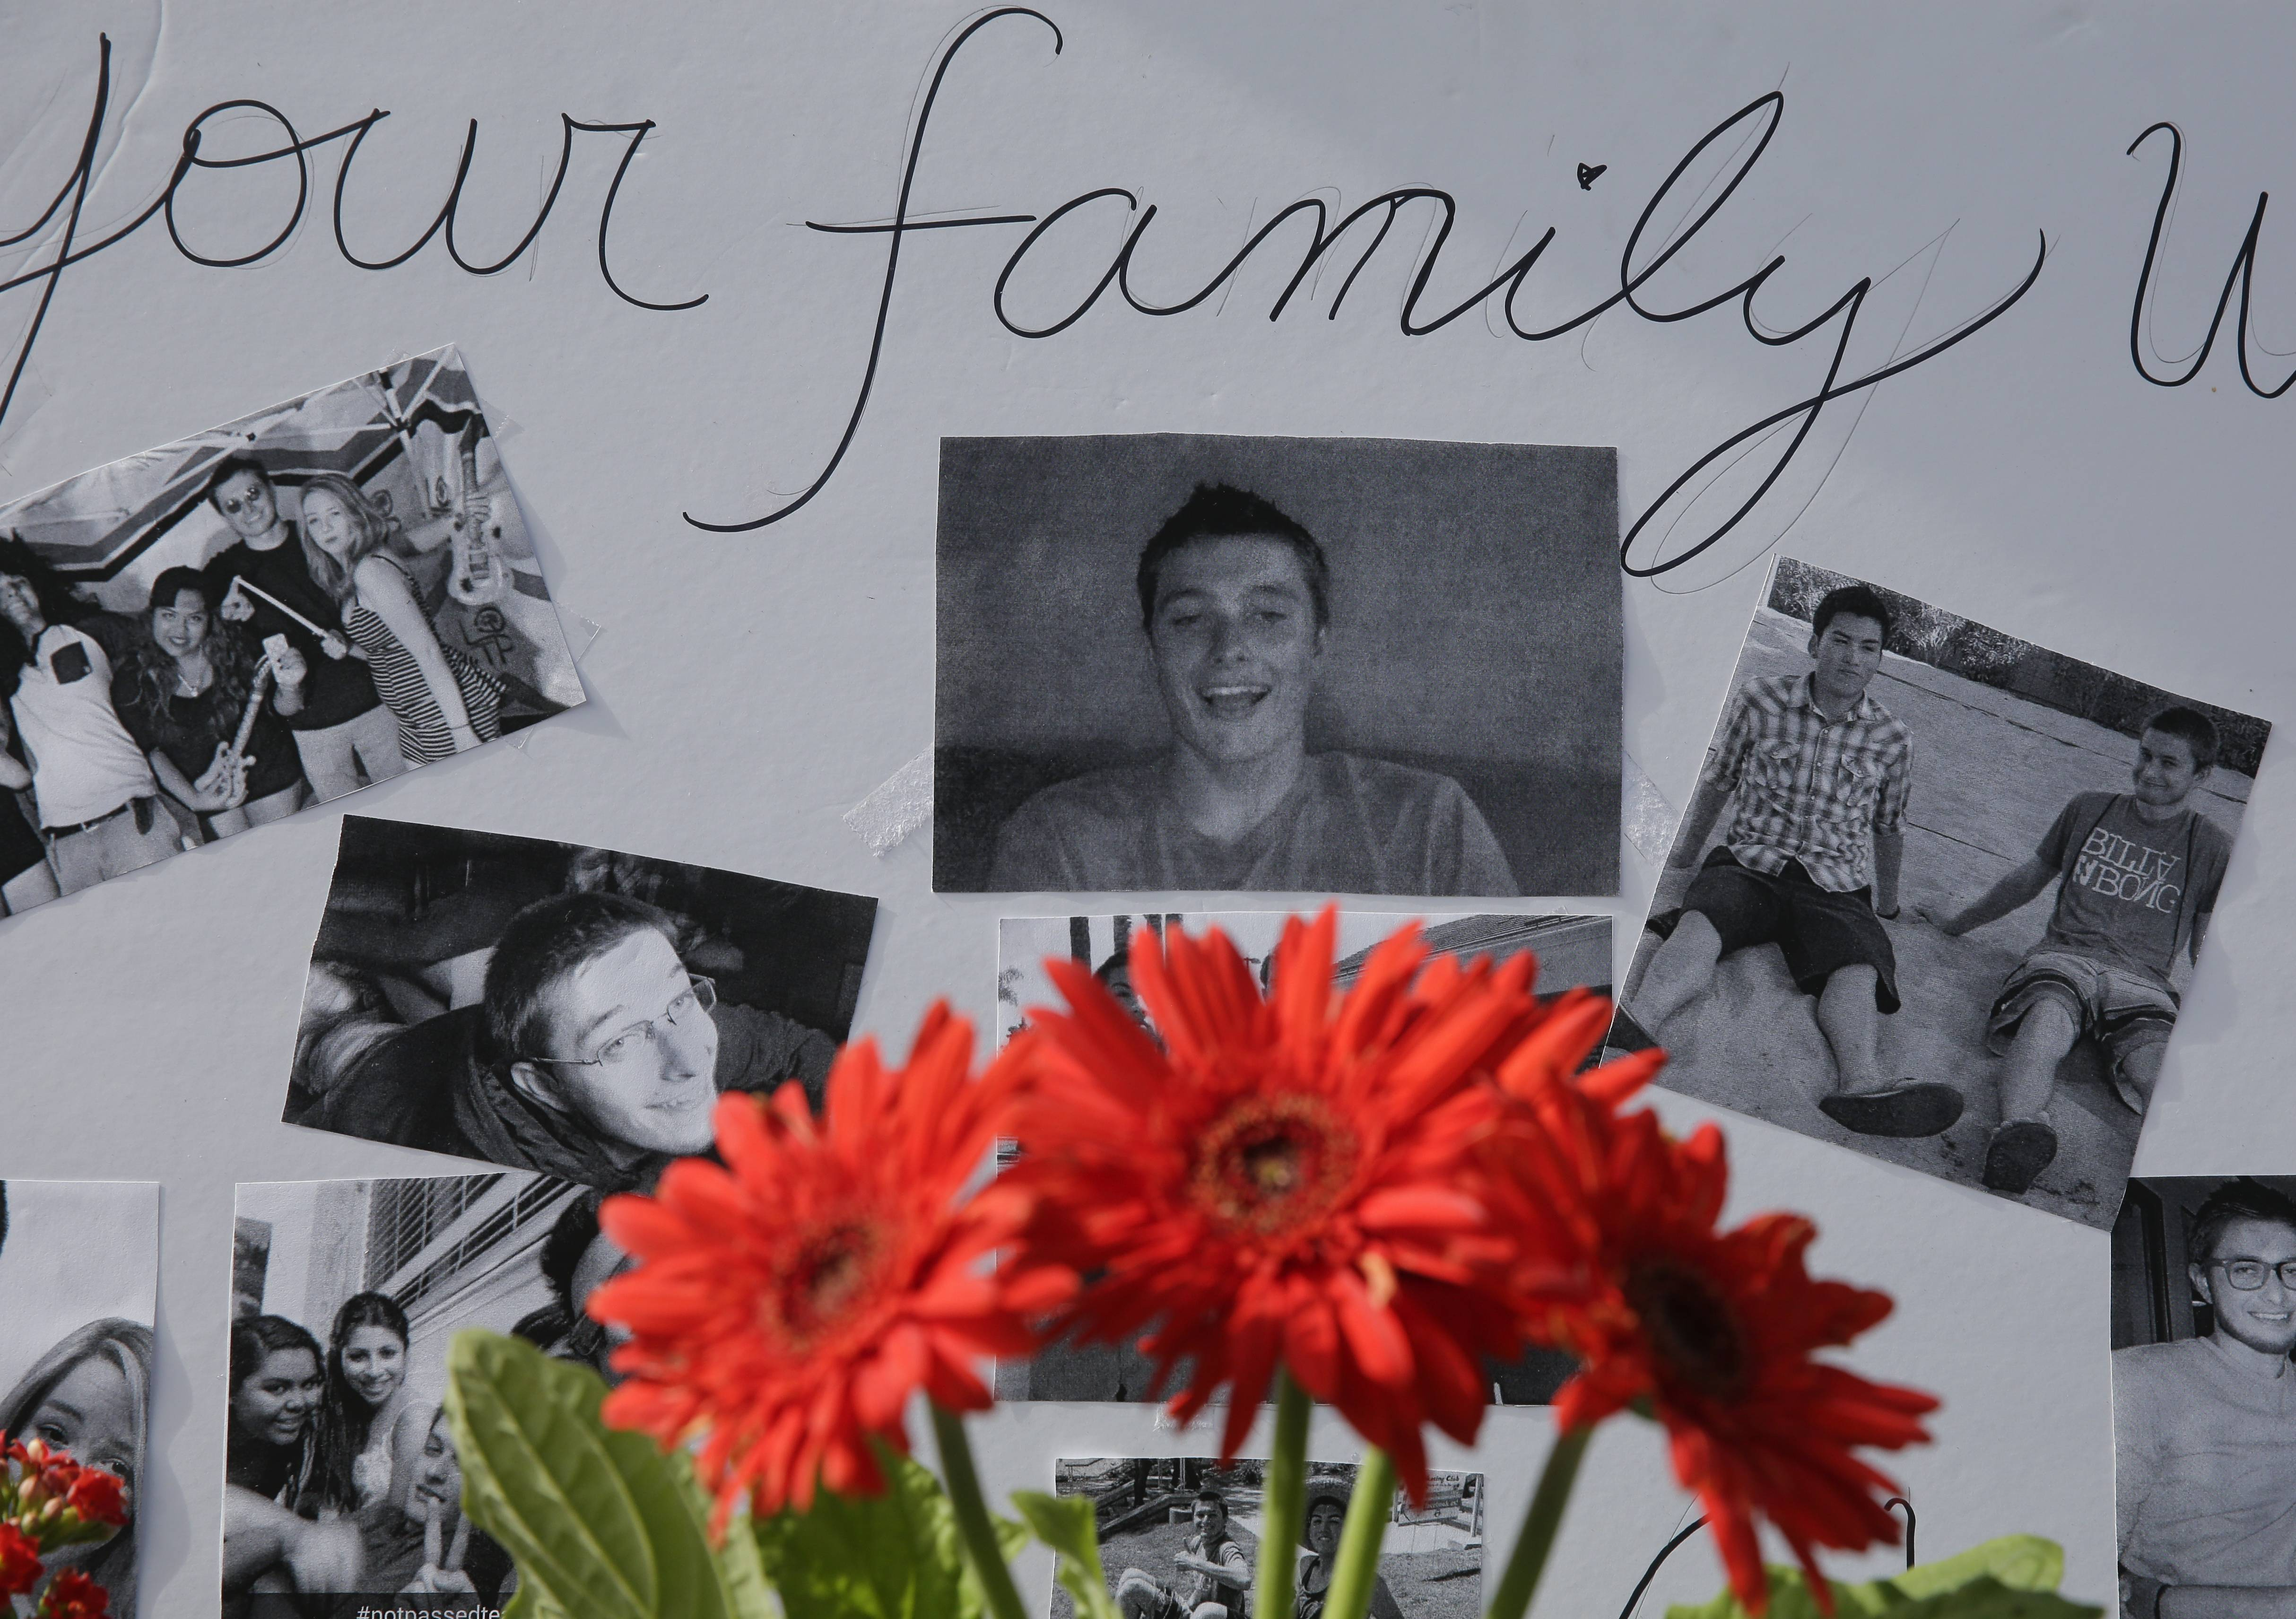 Images of Christopher Martinez are displayed as part of a memorial in front of the IV Deli Mart, where part of Friday night's mass shooting took place, on Sunday.